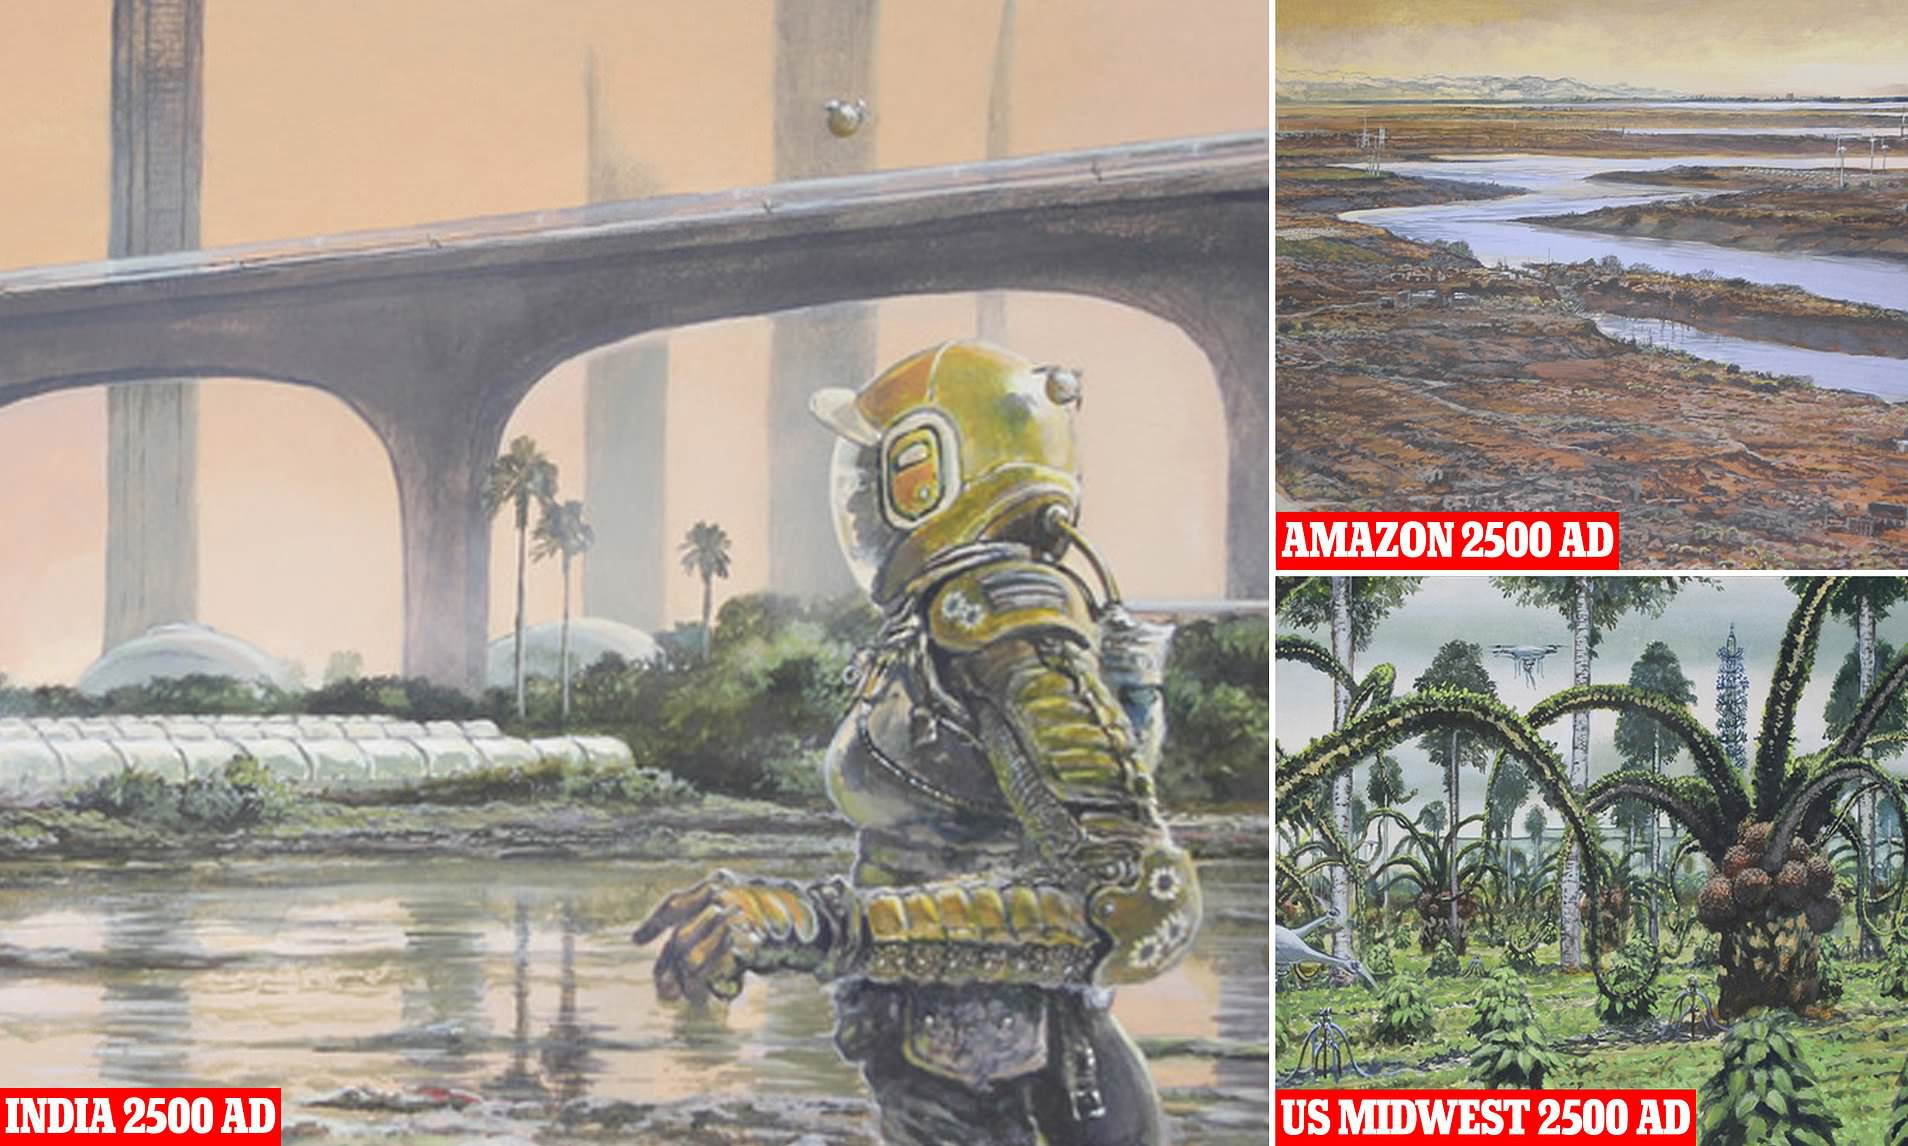 Earth 2500: Shocking images reveal how the Amazon will be barren and India too hot to live in